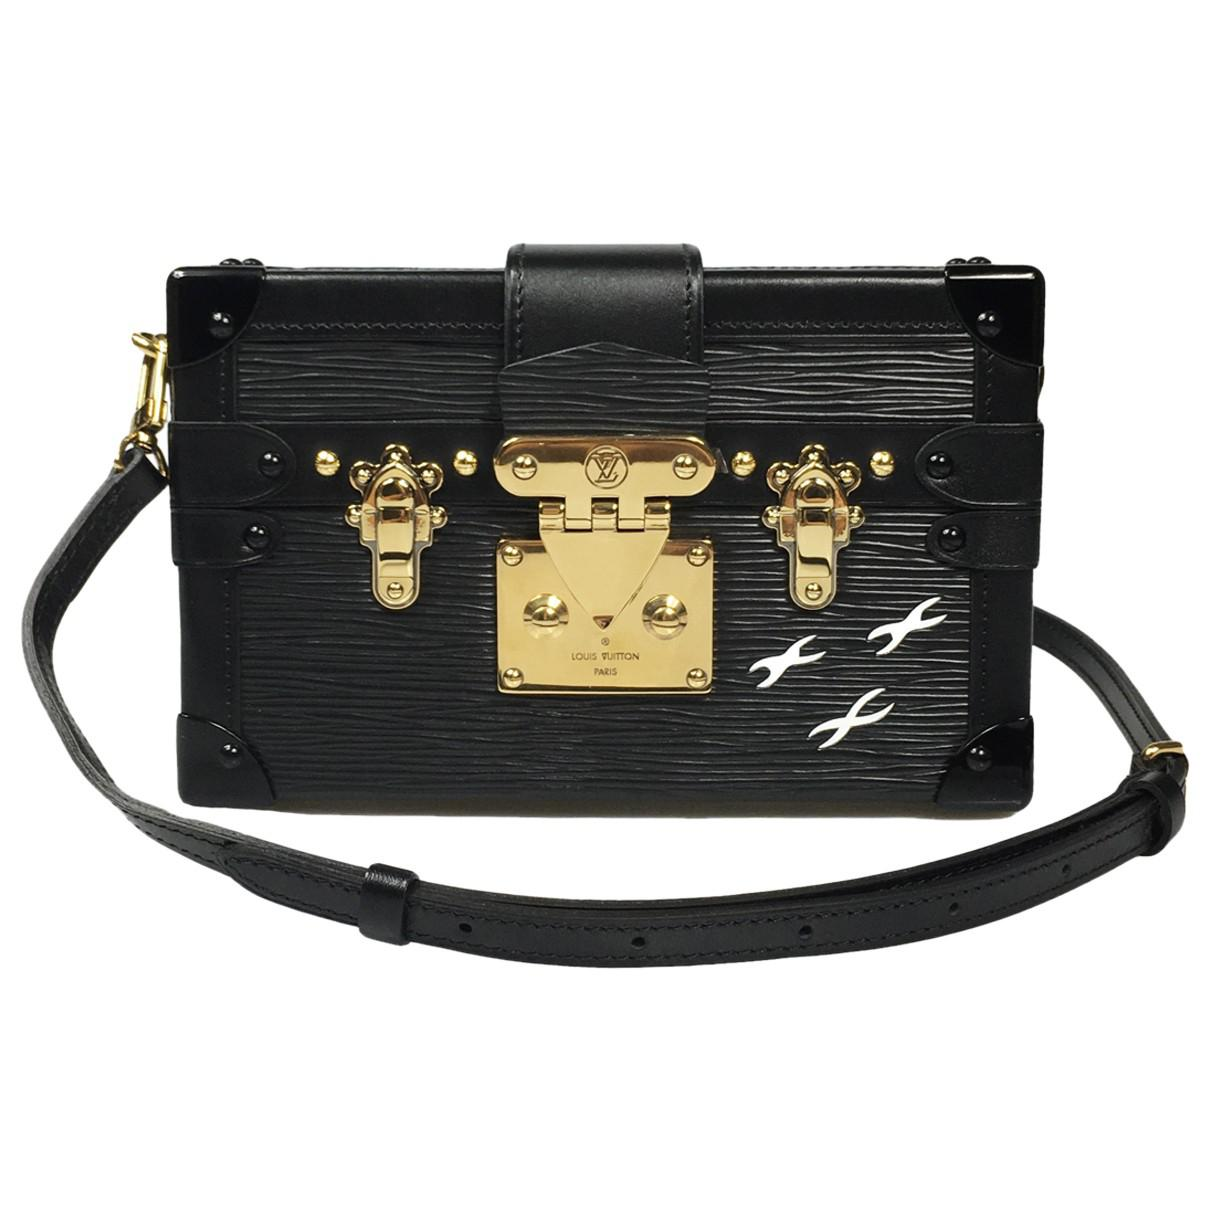 107801634cf6 Gallery. Previously sold at  Vestiaire Collective · Women s Louis Vuitton  Petite Malle